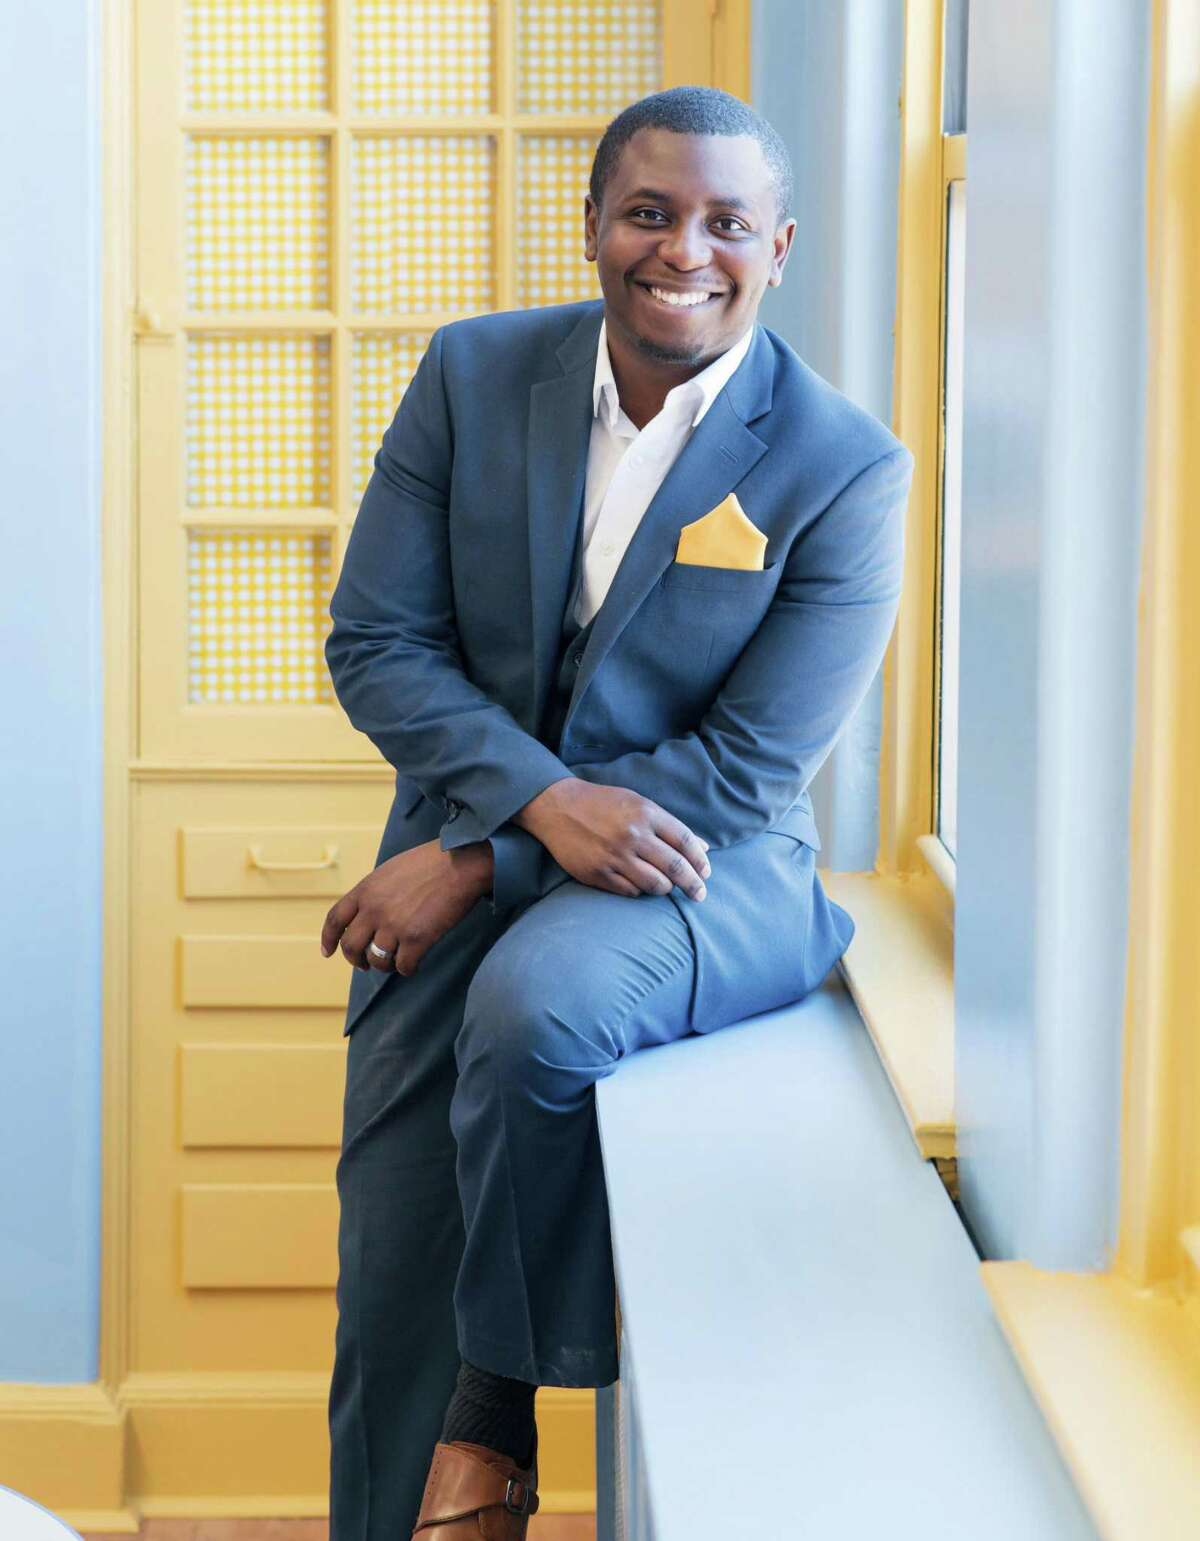 Fritz Chery, Stamford Board of Education candidate